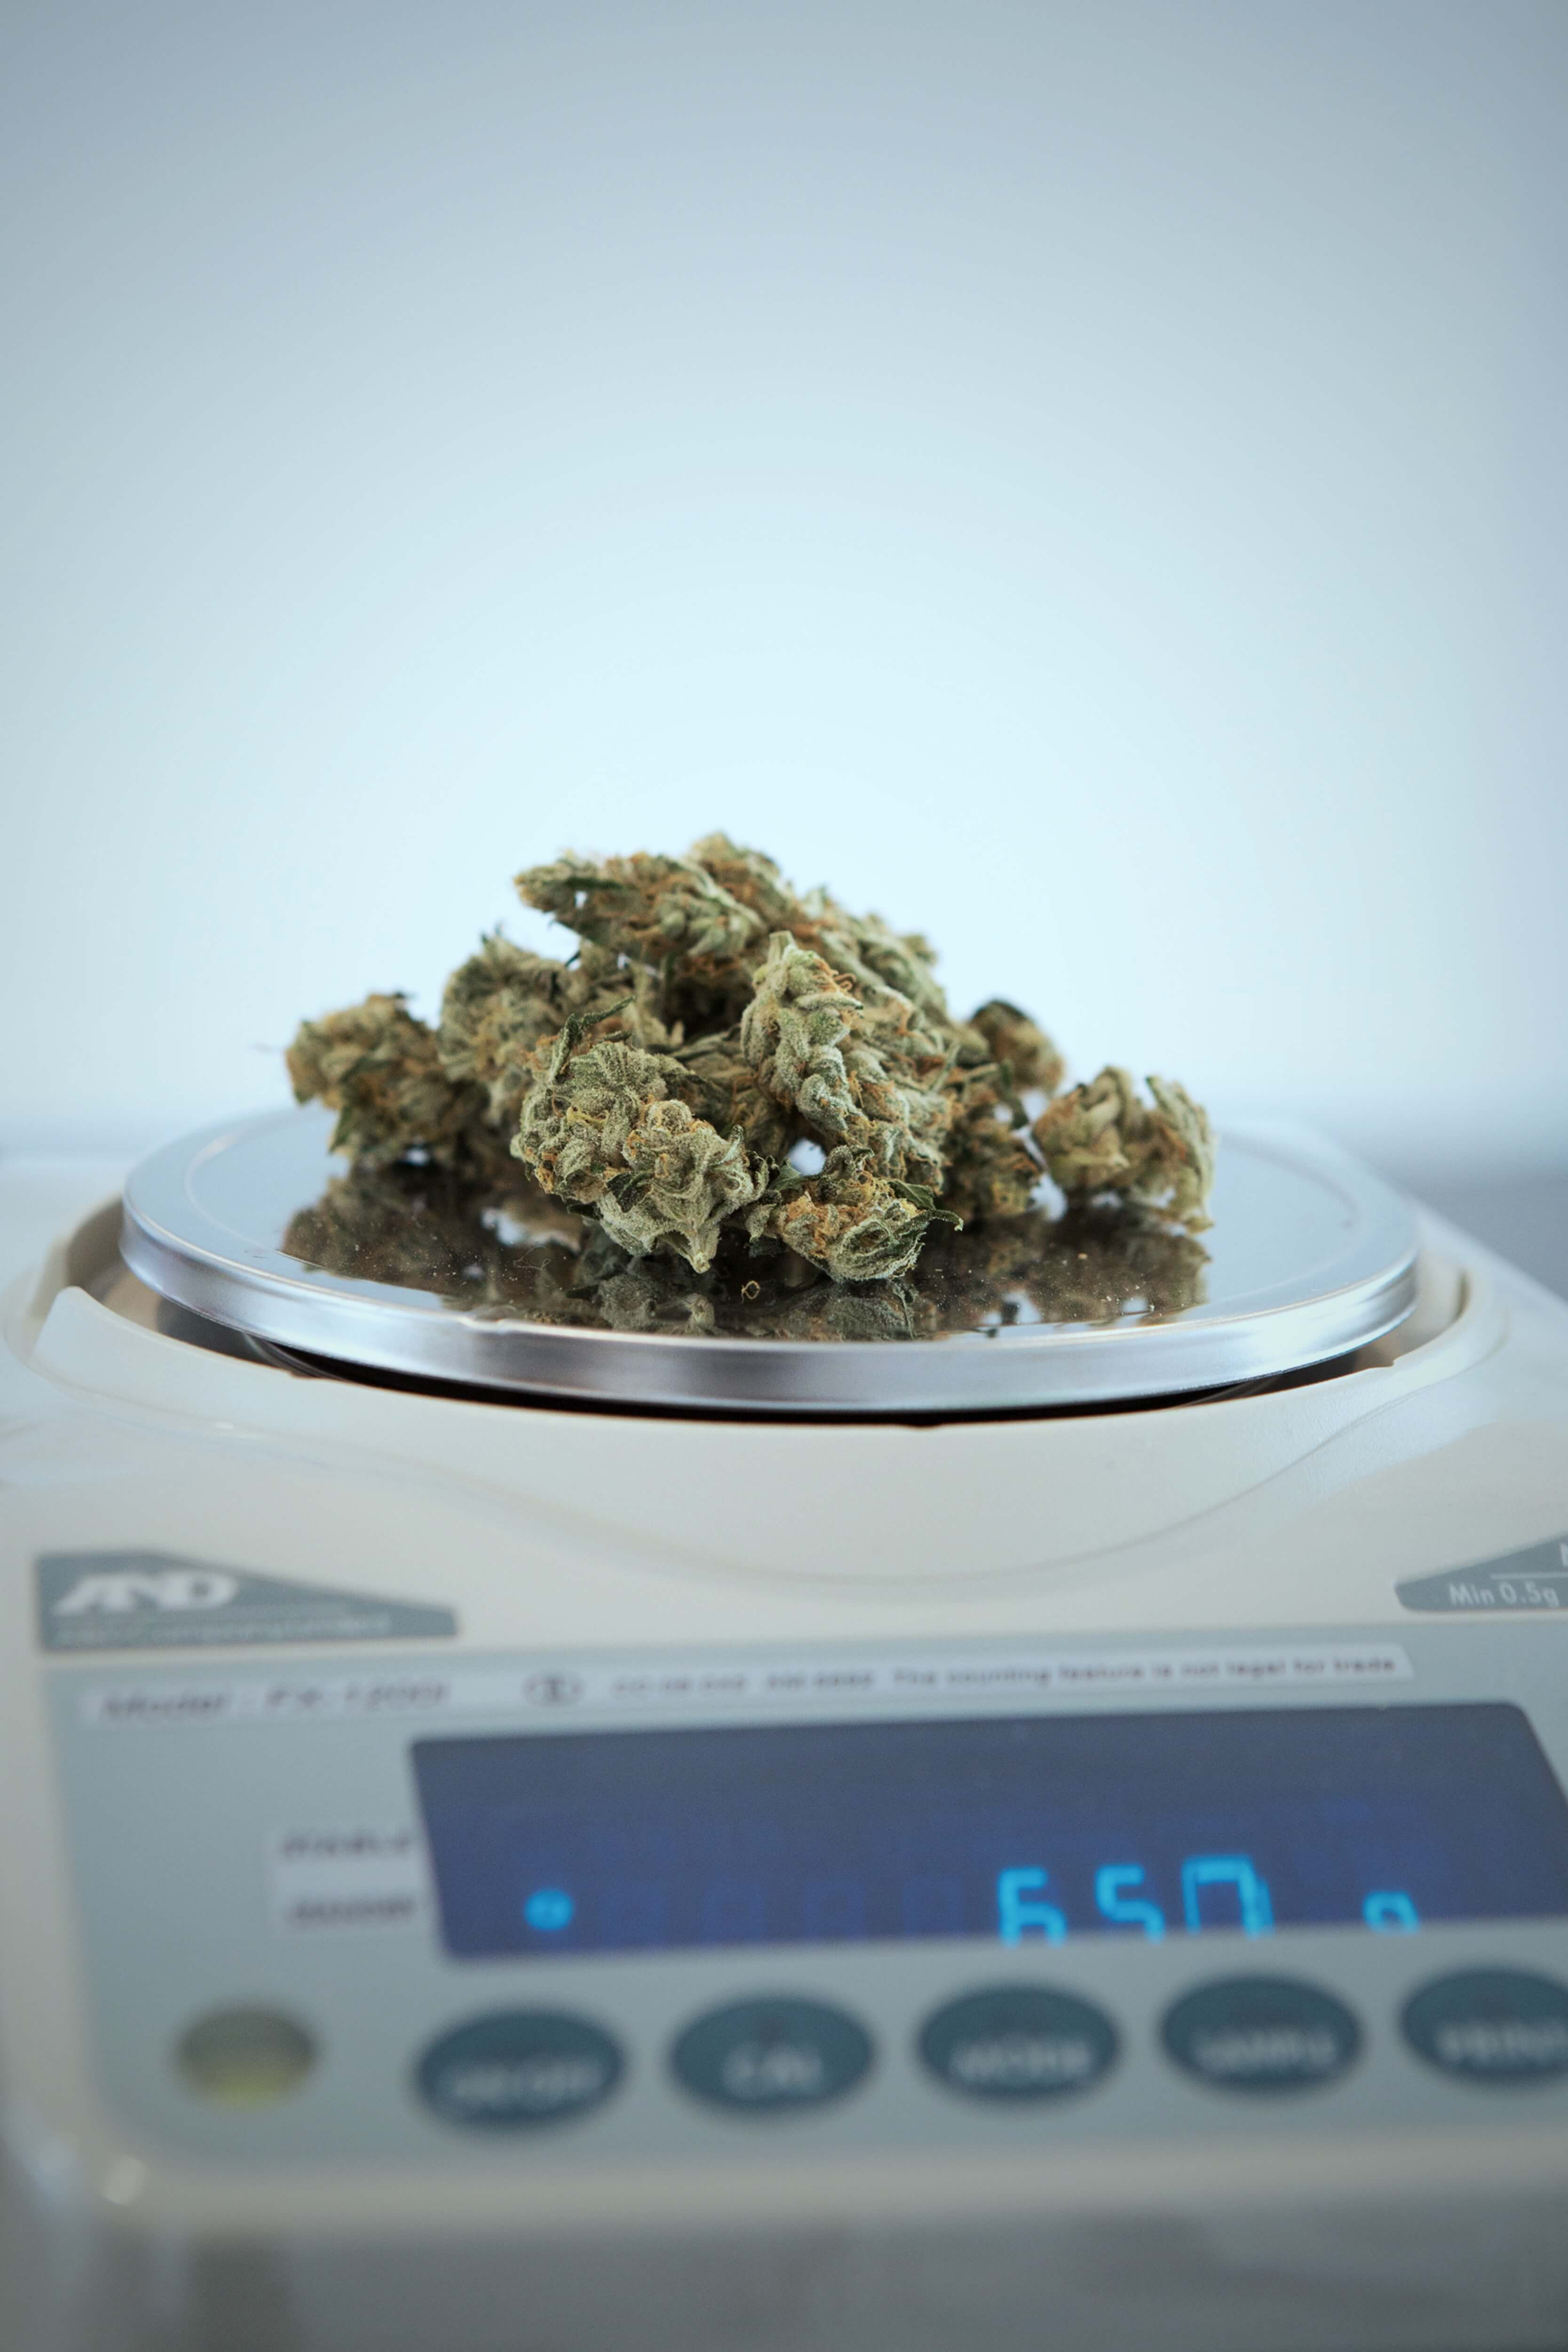 The Best Ways to Medicate Safely with Cannabis